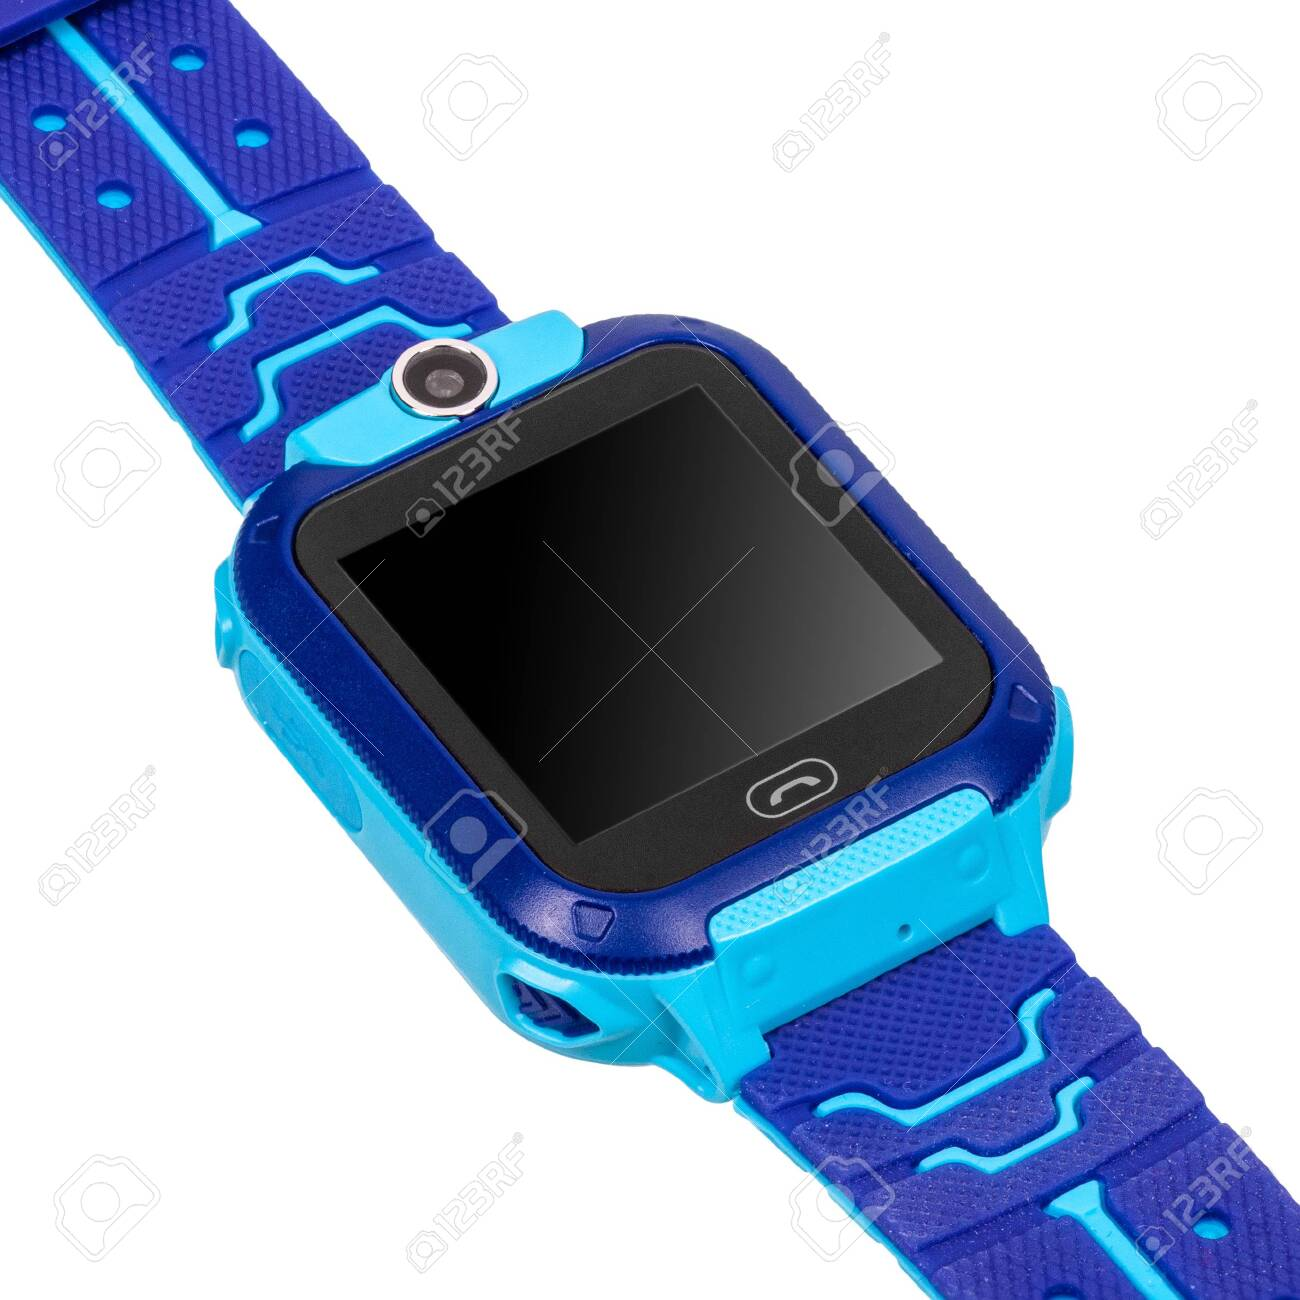 139979210 smart watch for children boy with a flat blank black screen for inscriptions a call button a video c